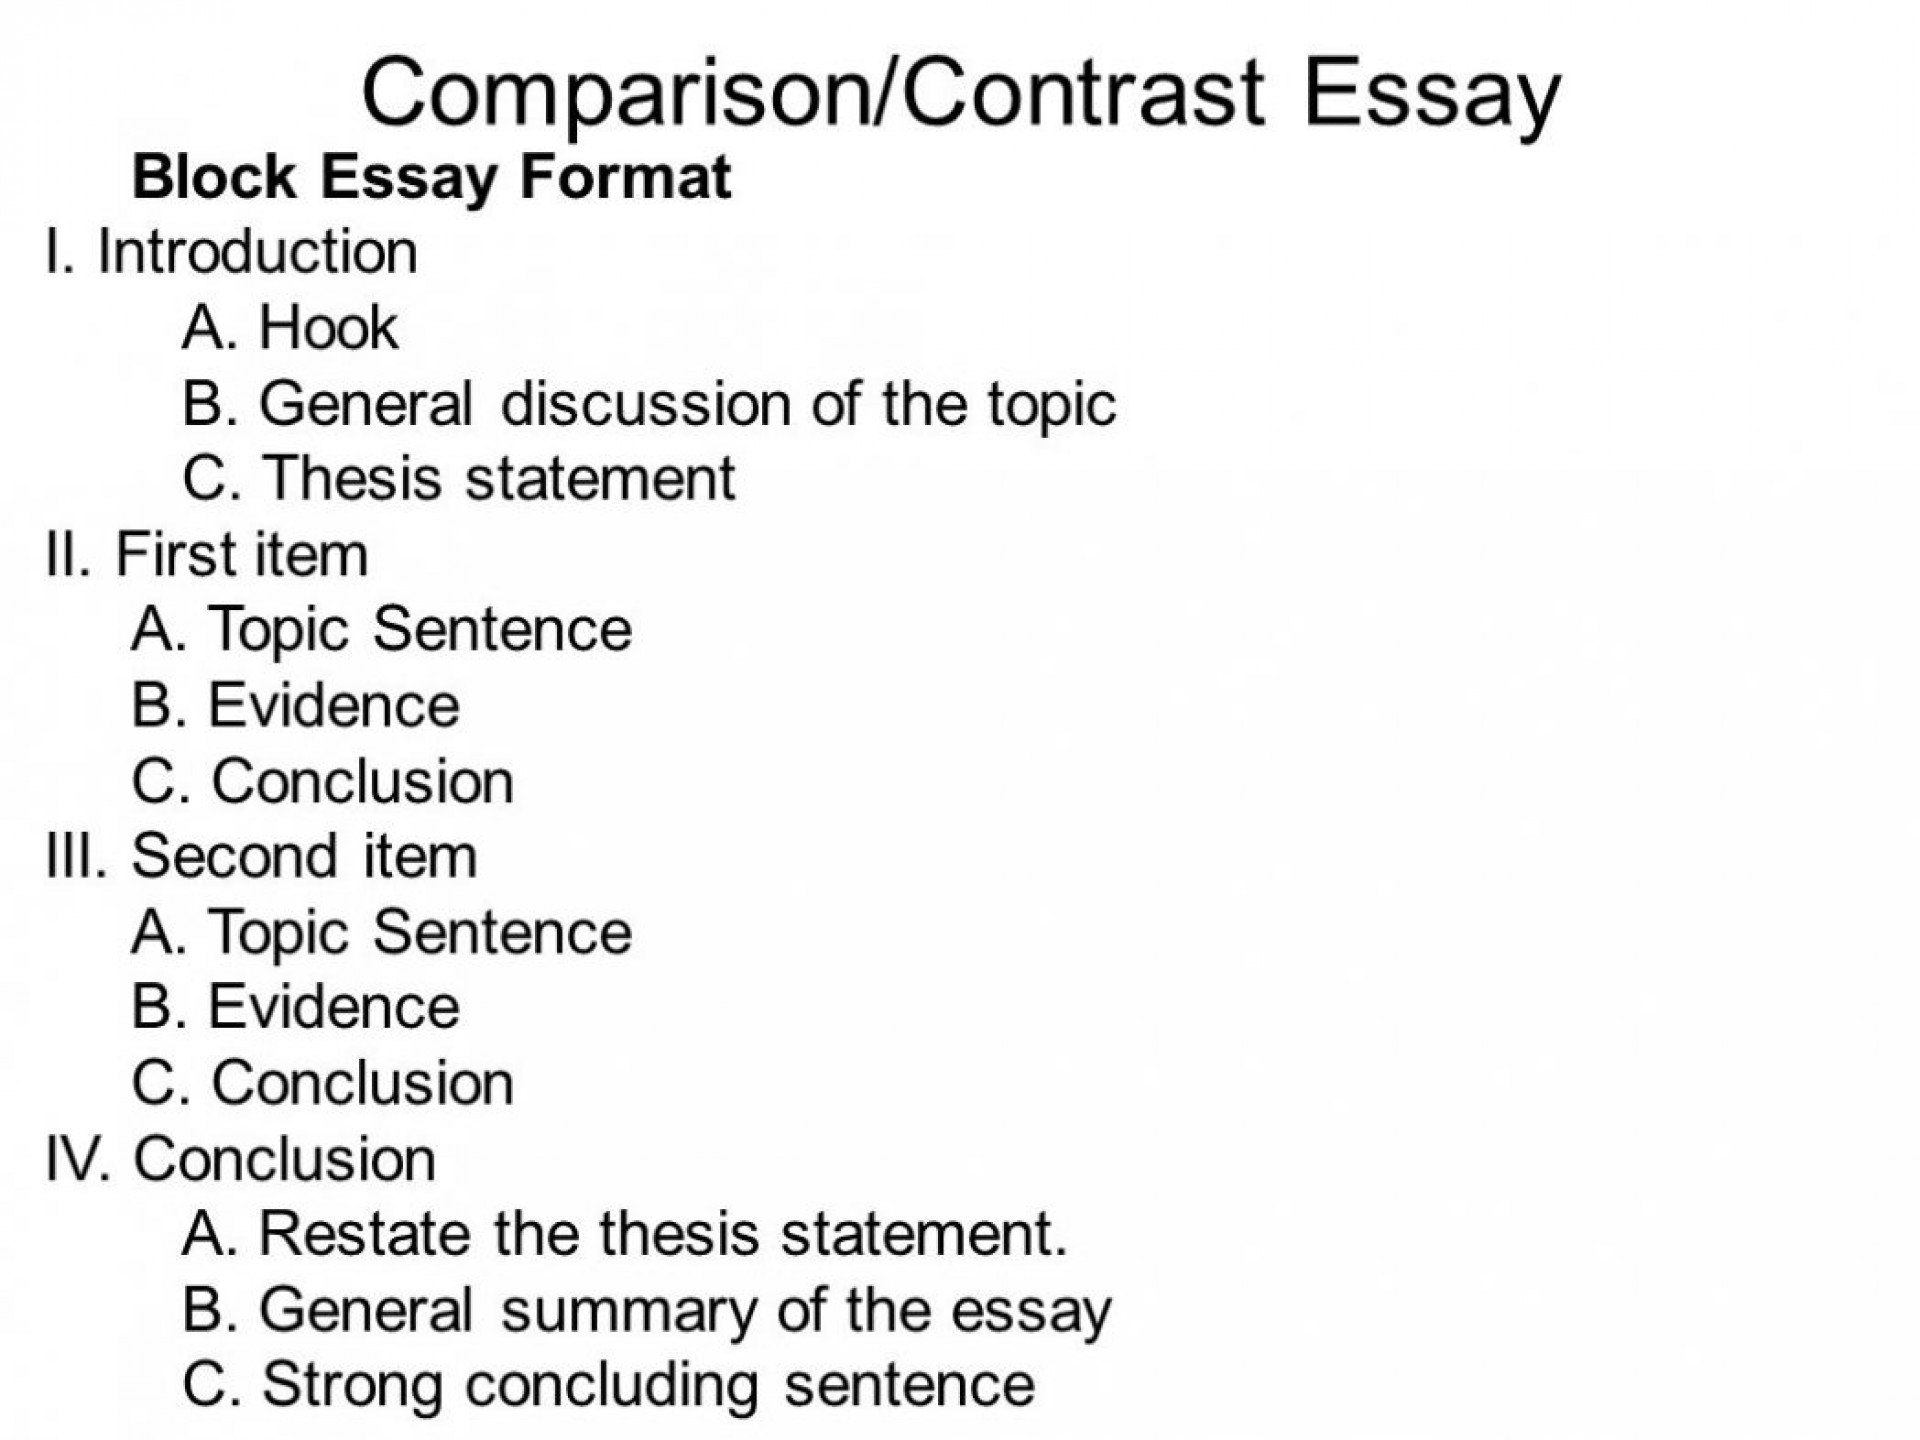 009 Compare And Contrast Essay Intro Example Thesis For Writing Portfolio With Mr Butner Informative Introduction Outline Sli Extended Structure Paragraph Top Sample 1920